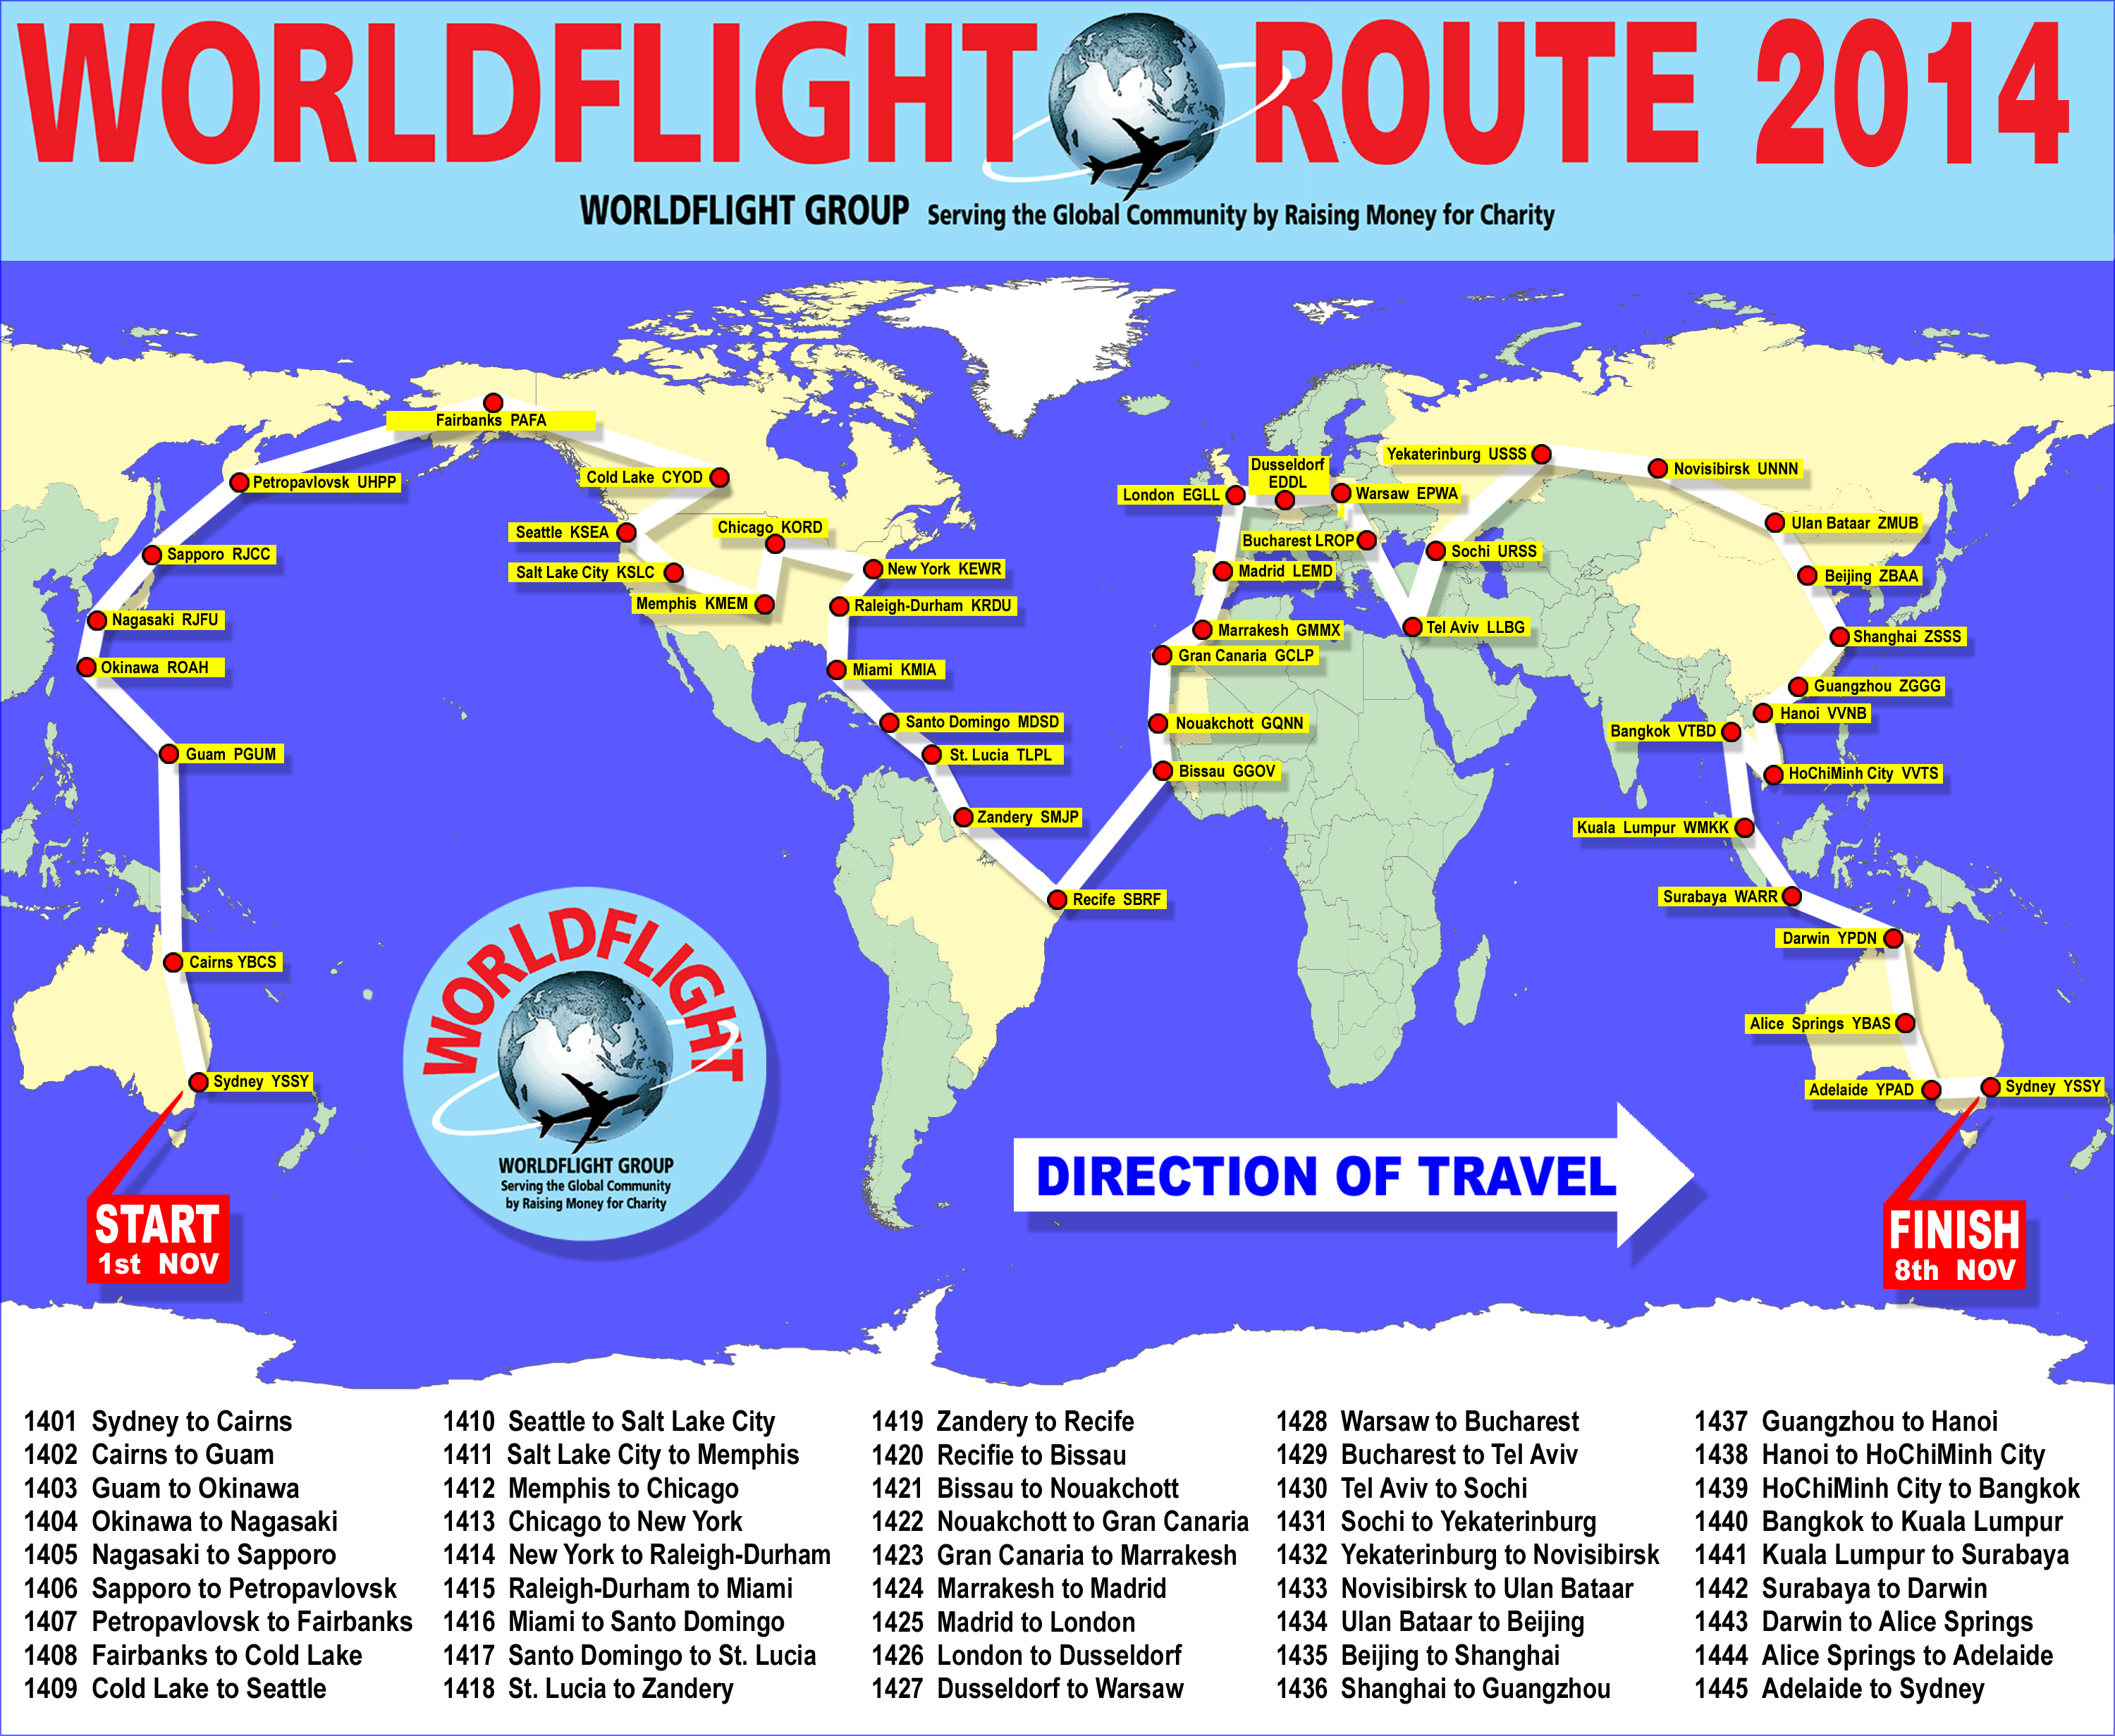 World Flight 2014 event image